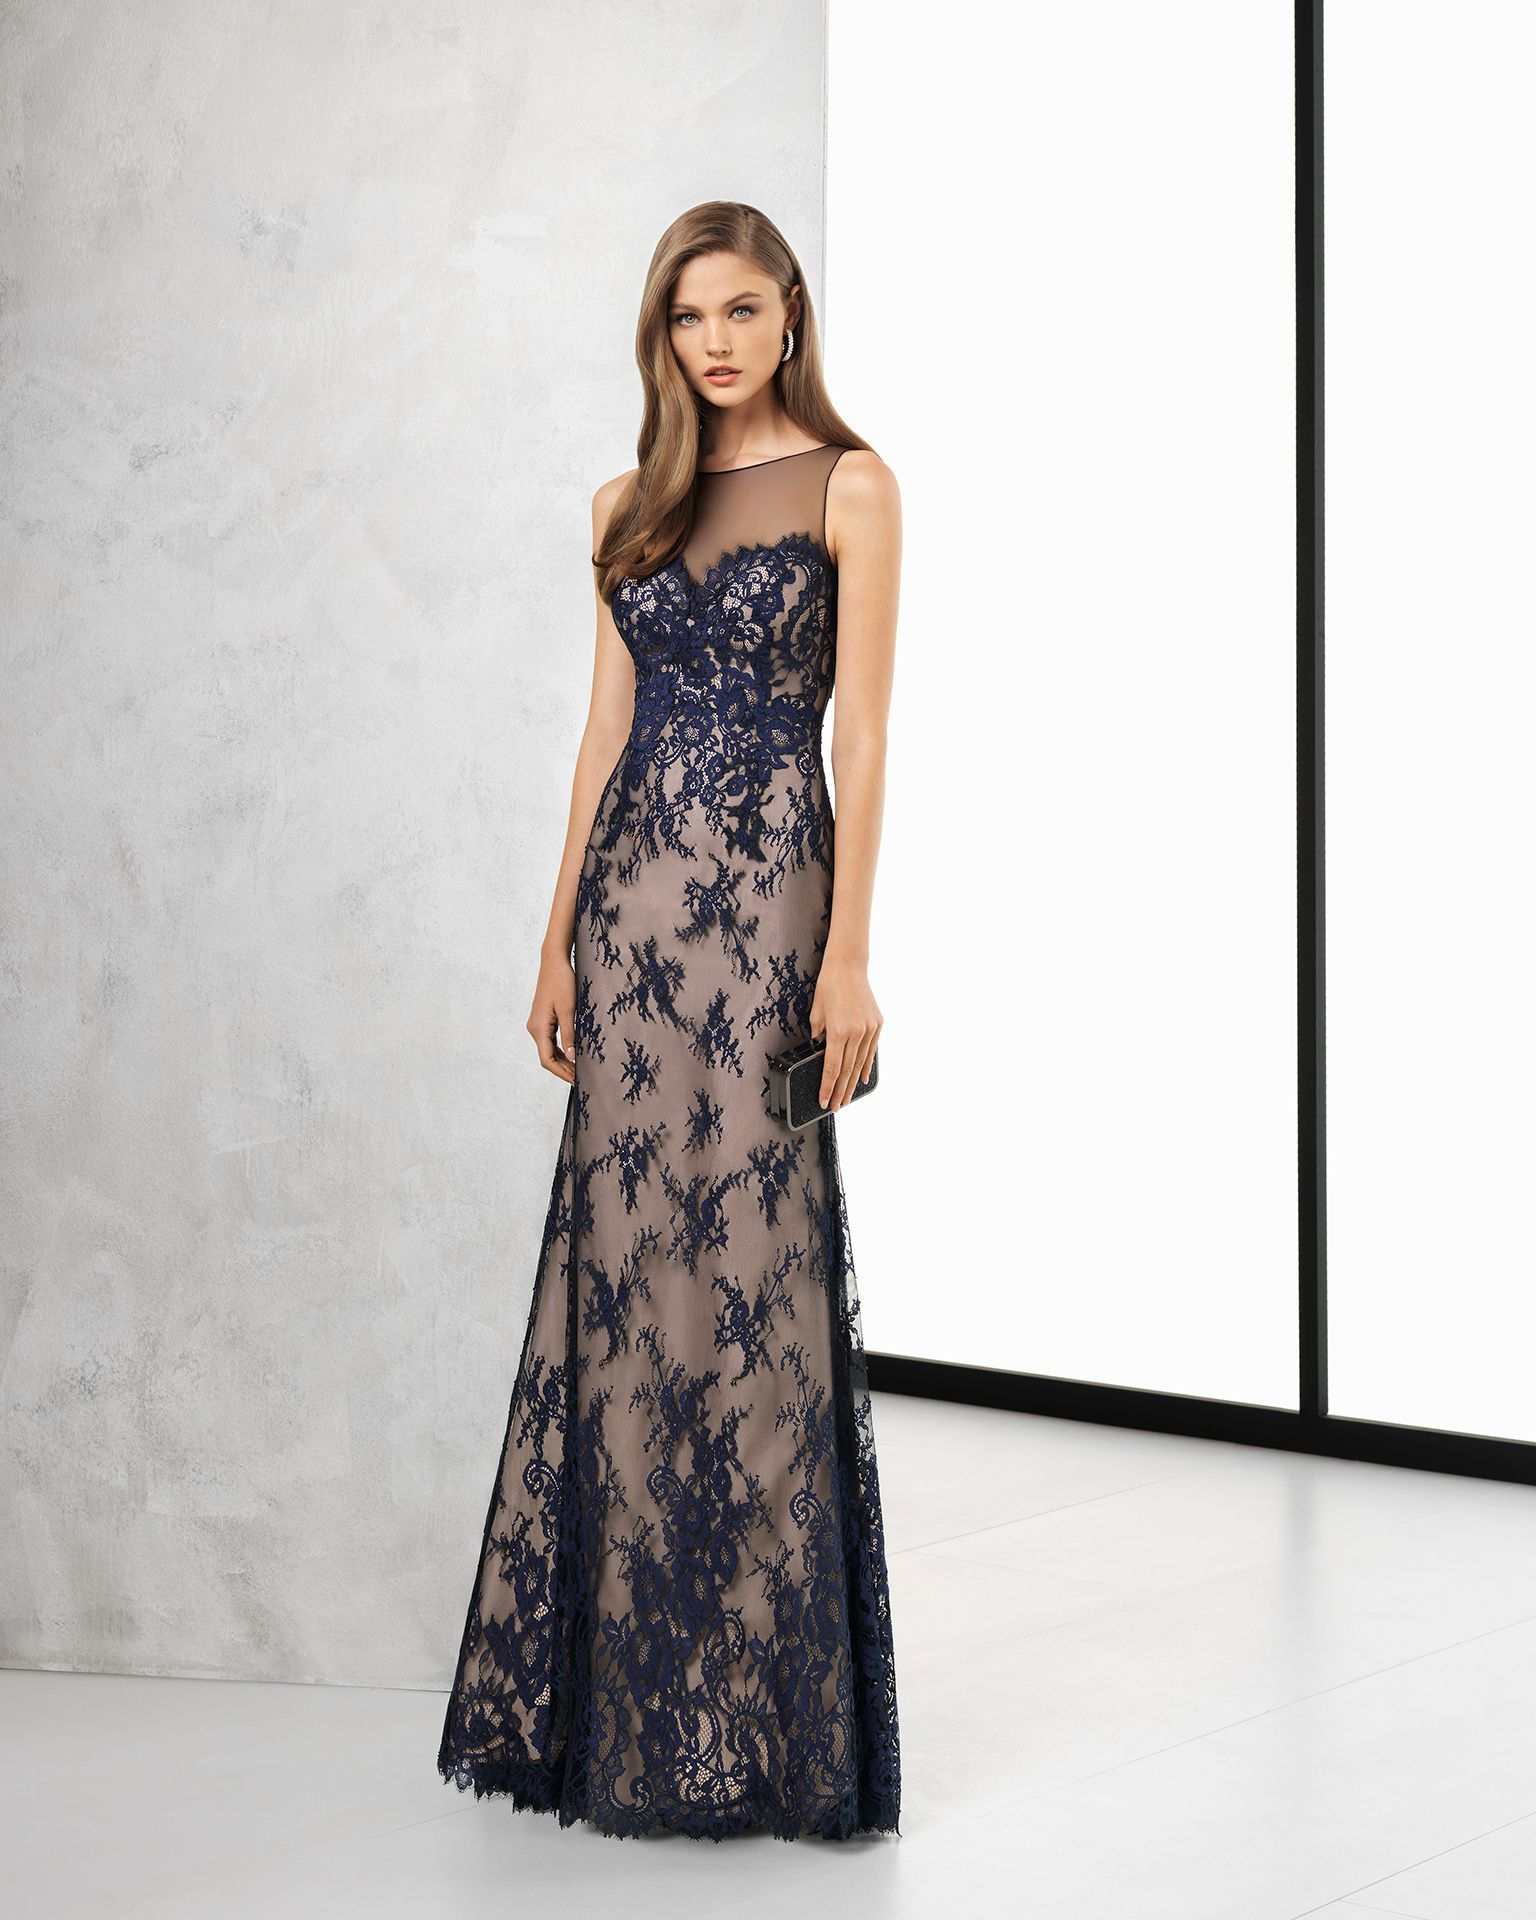 Long lace cocktail dress with sheer-effect three-quarter sleeves f8e9b41af48e